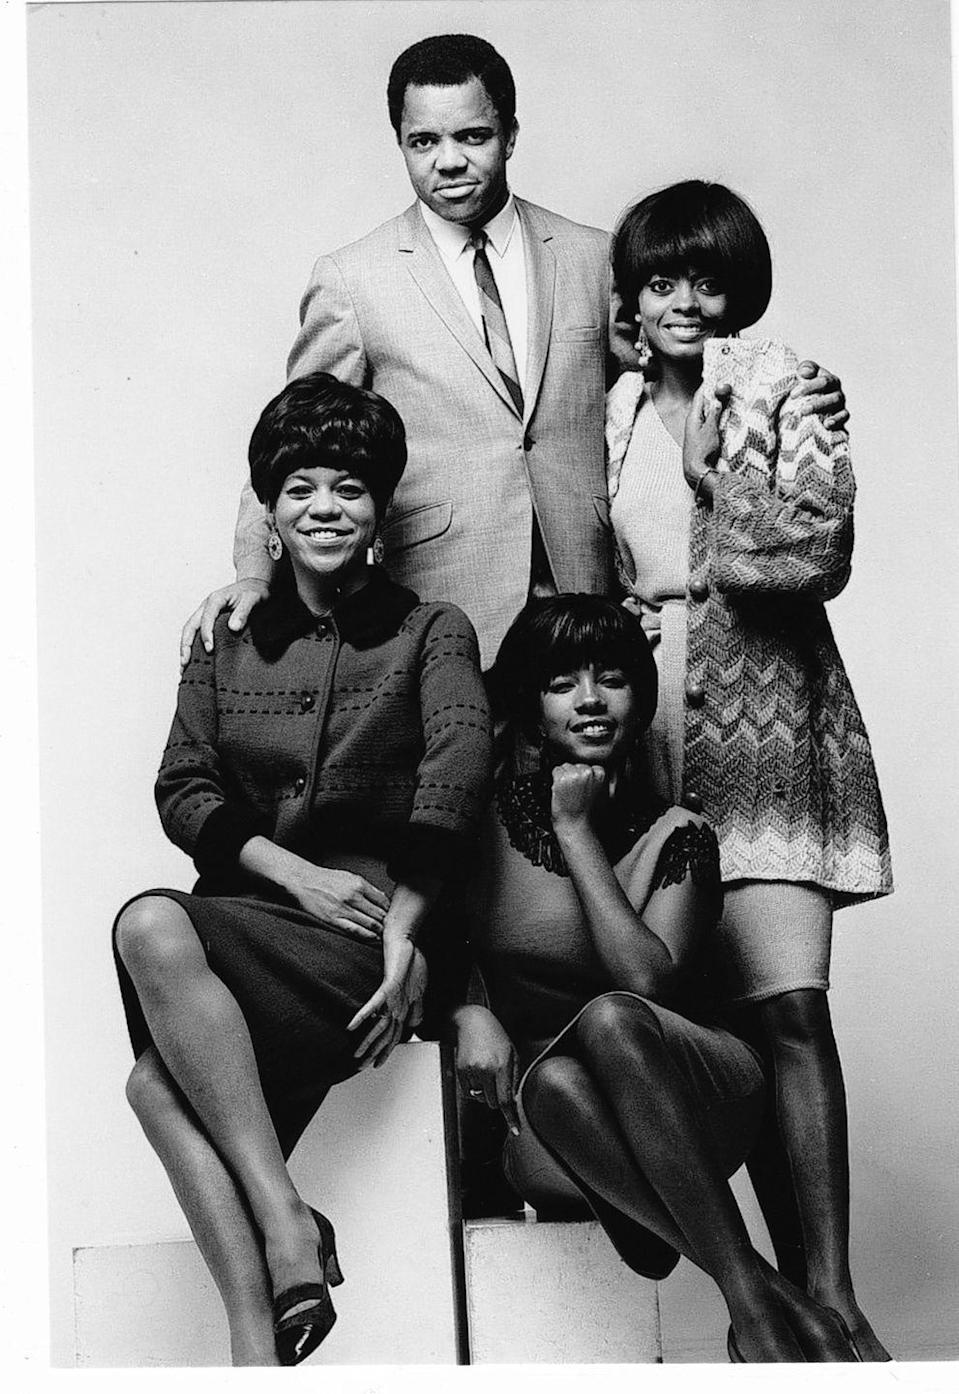 """<p>After an introduction to a Motown Records executive, the group caught the eye of <a href=""""https://www.notablebiographies.com/Ro-Sc/Ross-Diana.html"""" rel=""""nofollow noopener"""" target=""""_blank"""" data-ylk=""""slk:founder Berry Gordy"""" class=""""link rapid-noclick-resp"""">founder Berry Gordy</a>, then signed a record deal with the label in 1961. They officially changed their name to the Supremes not long after, and became a trio when <a href=""""https://www.grammy.com/grammys/news/barbara-martin-original-singer-supremes-dies-76"""" rel=""""nofollow noopener"""" target=""""_blank"""" data-ylk=""""slk:Barbara Martin dropped out"""" class=""""link rapid-noclick-resp"""">Barbara Martin dropped out</a>. </p>"""